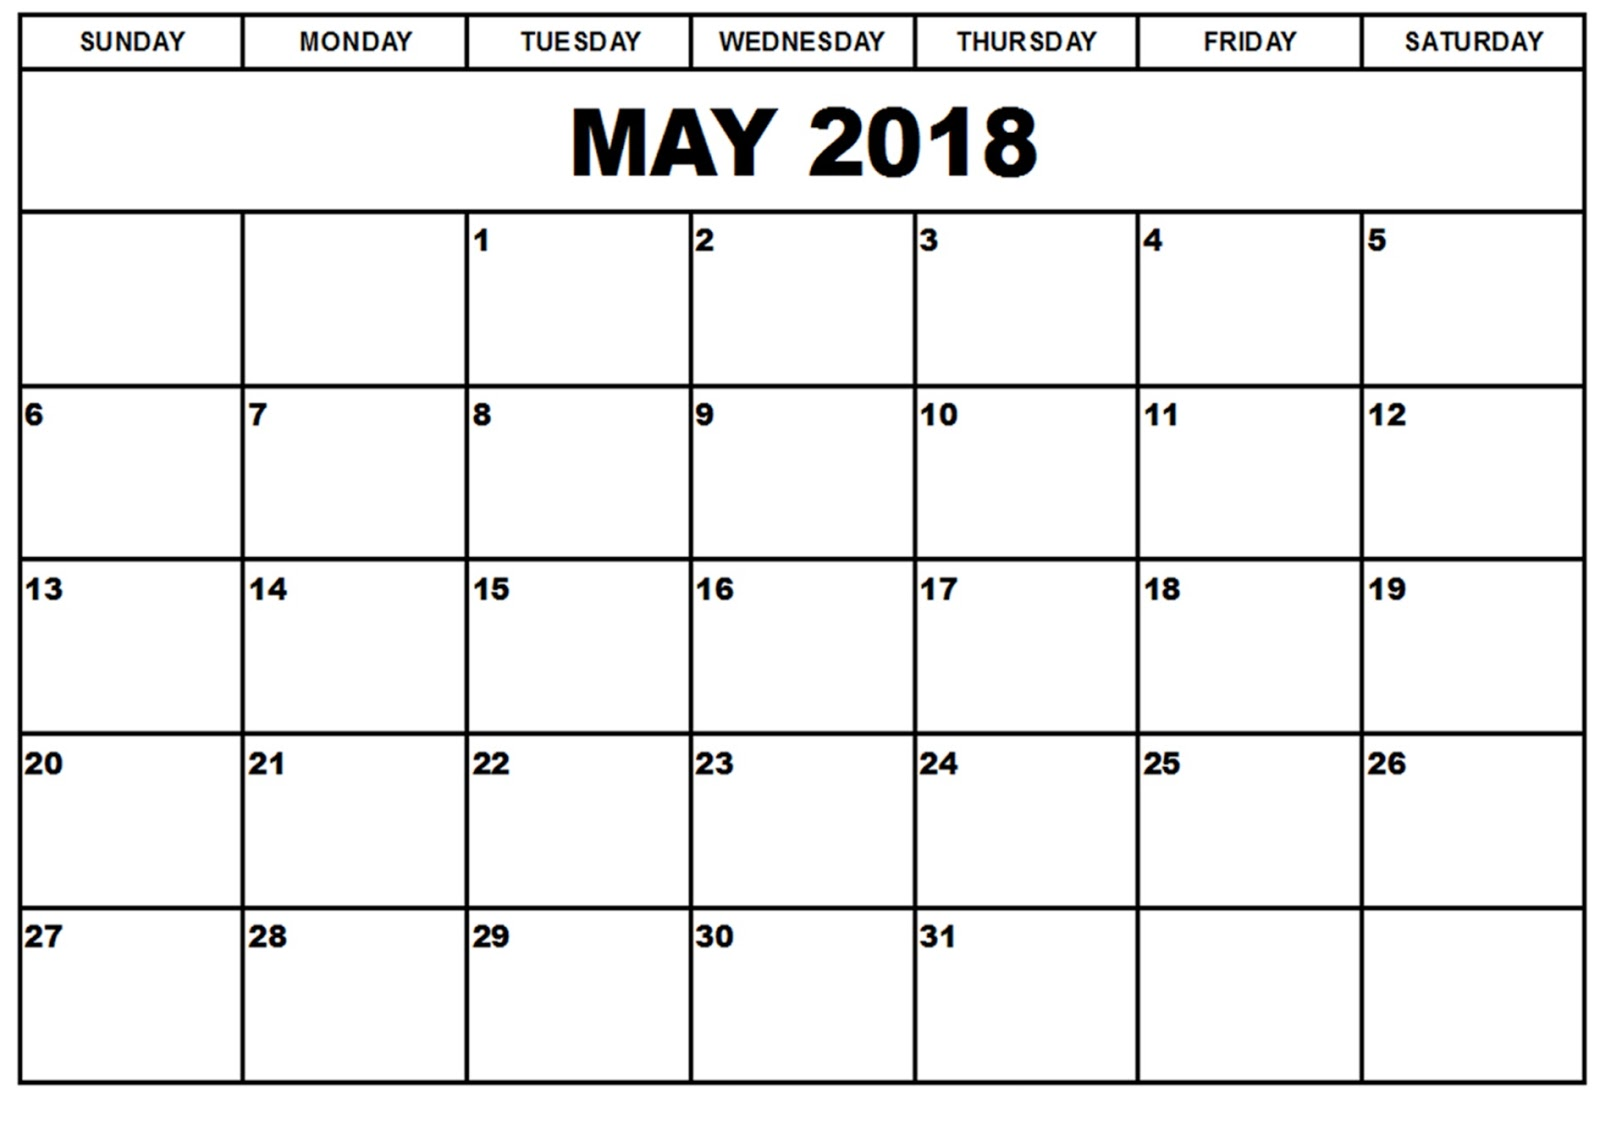 Calendar May 2018 UK, Bank Holidays, Excel/PDF/Word Templates